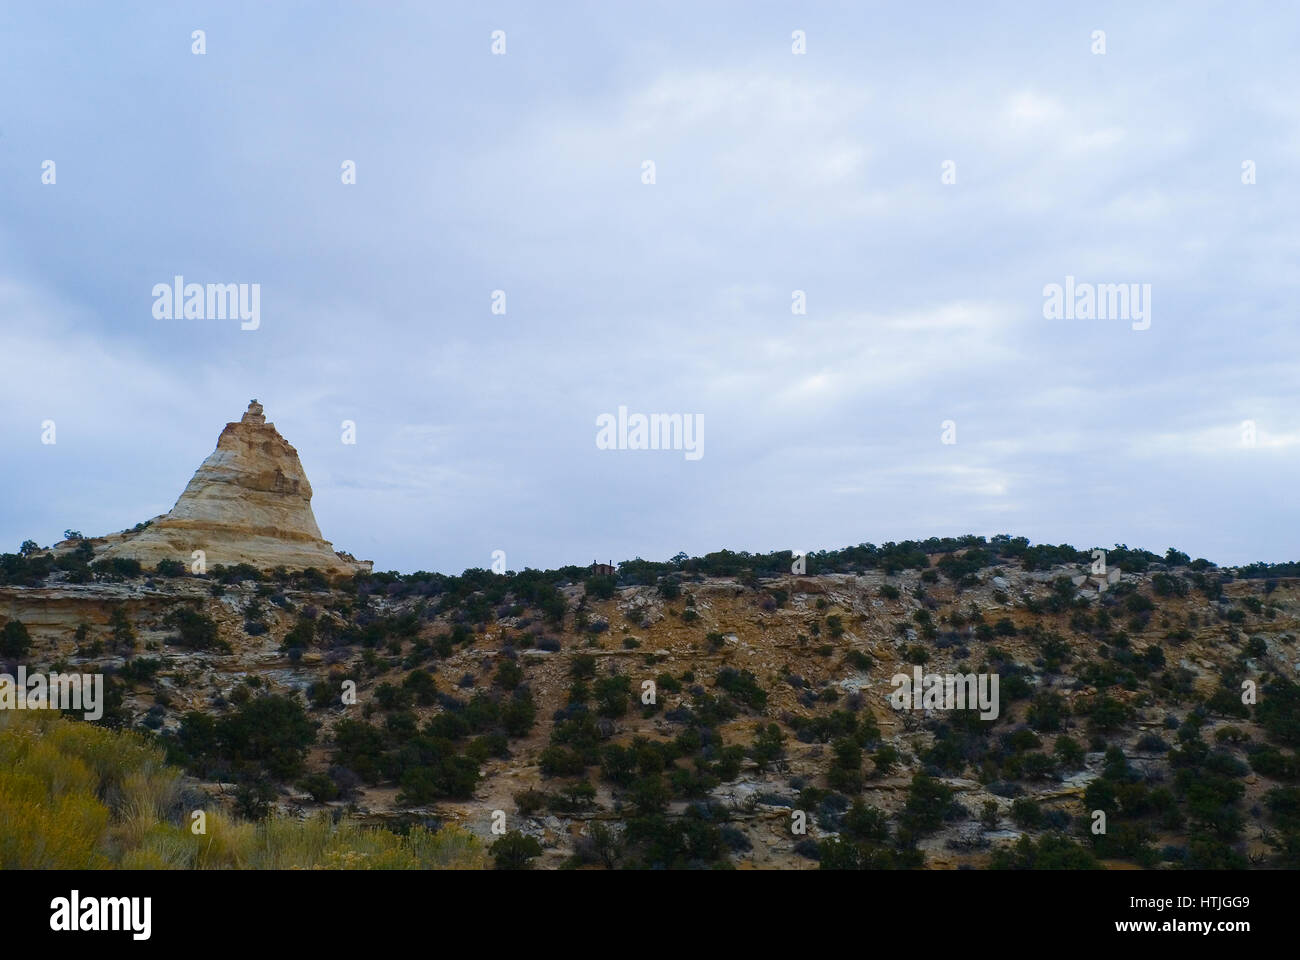 A rock formation on a plateau in Utah - Stock Image